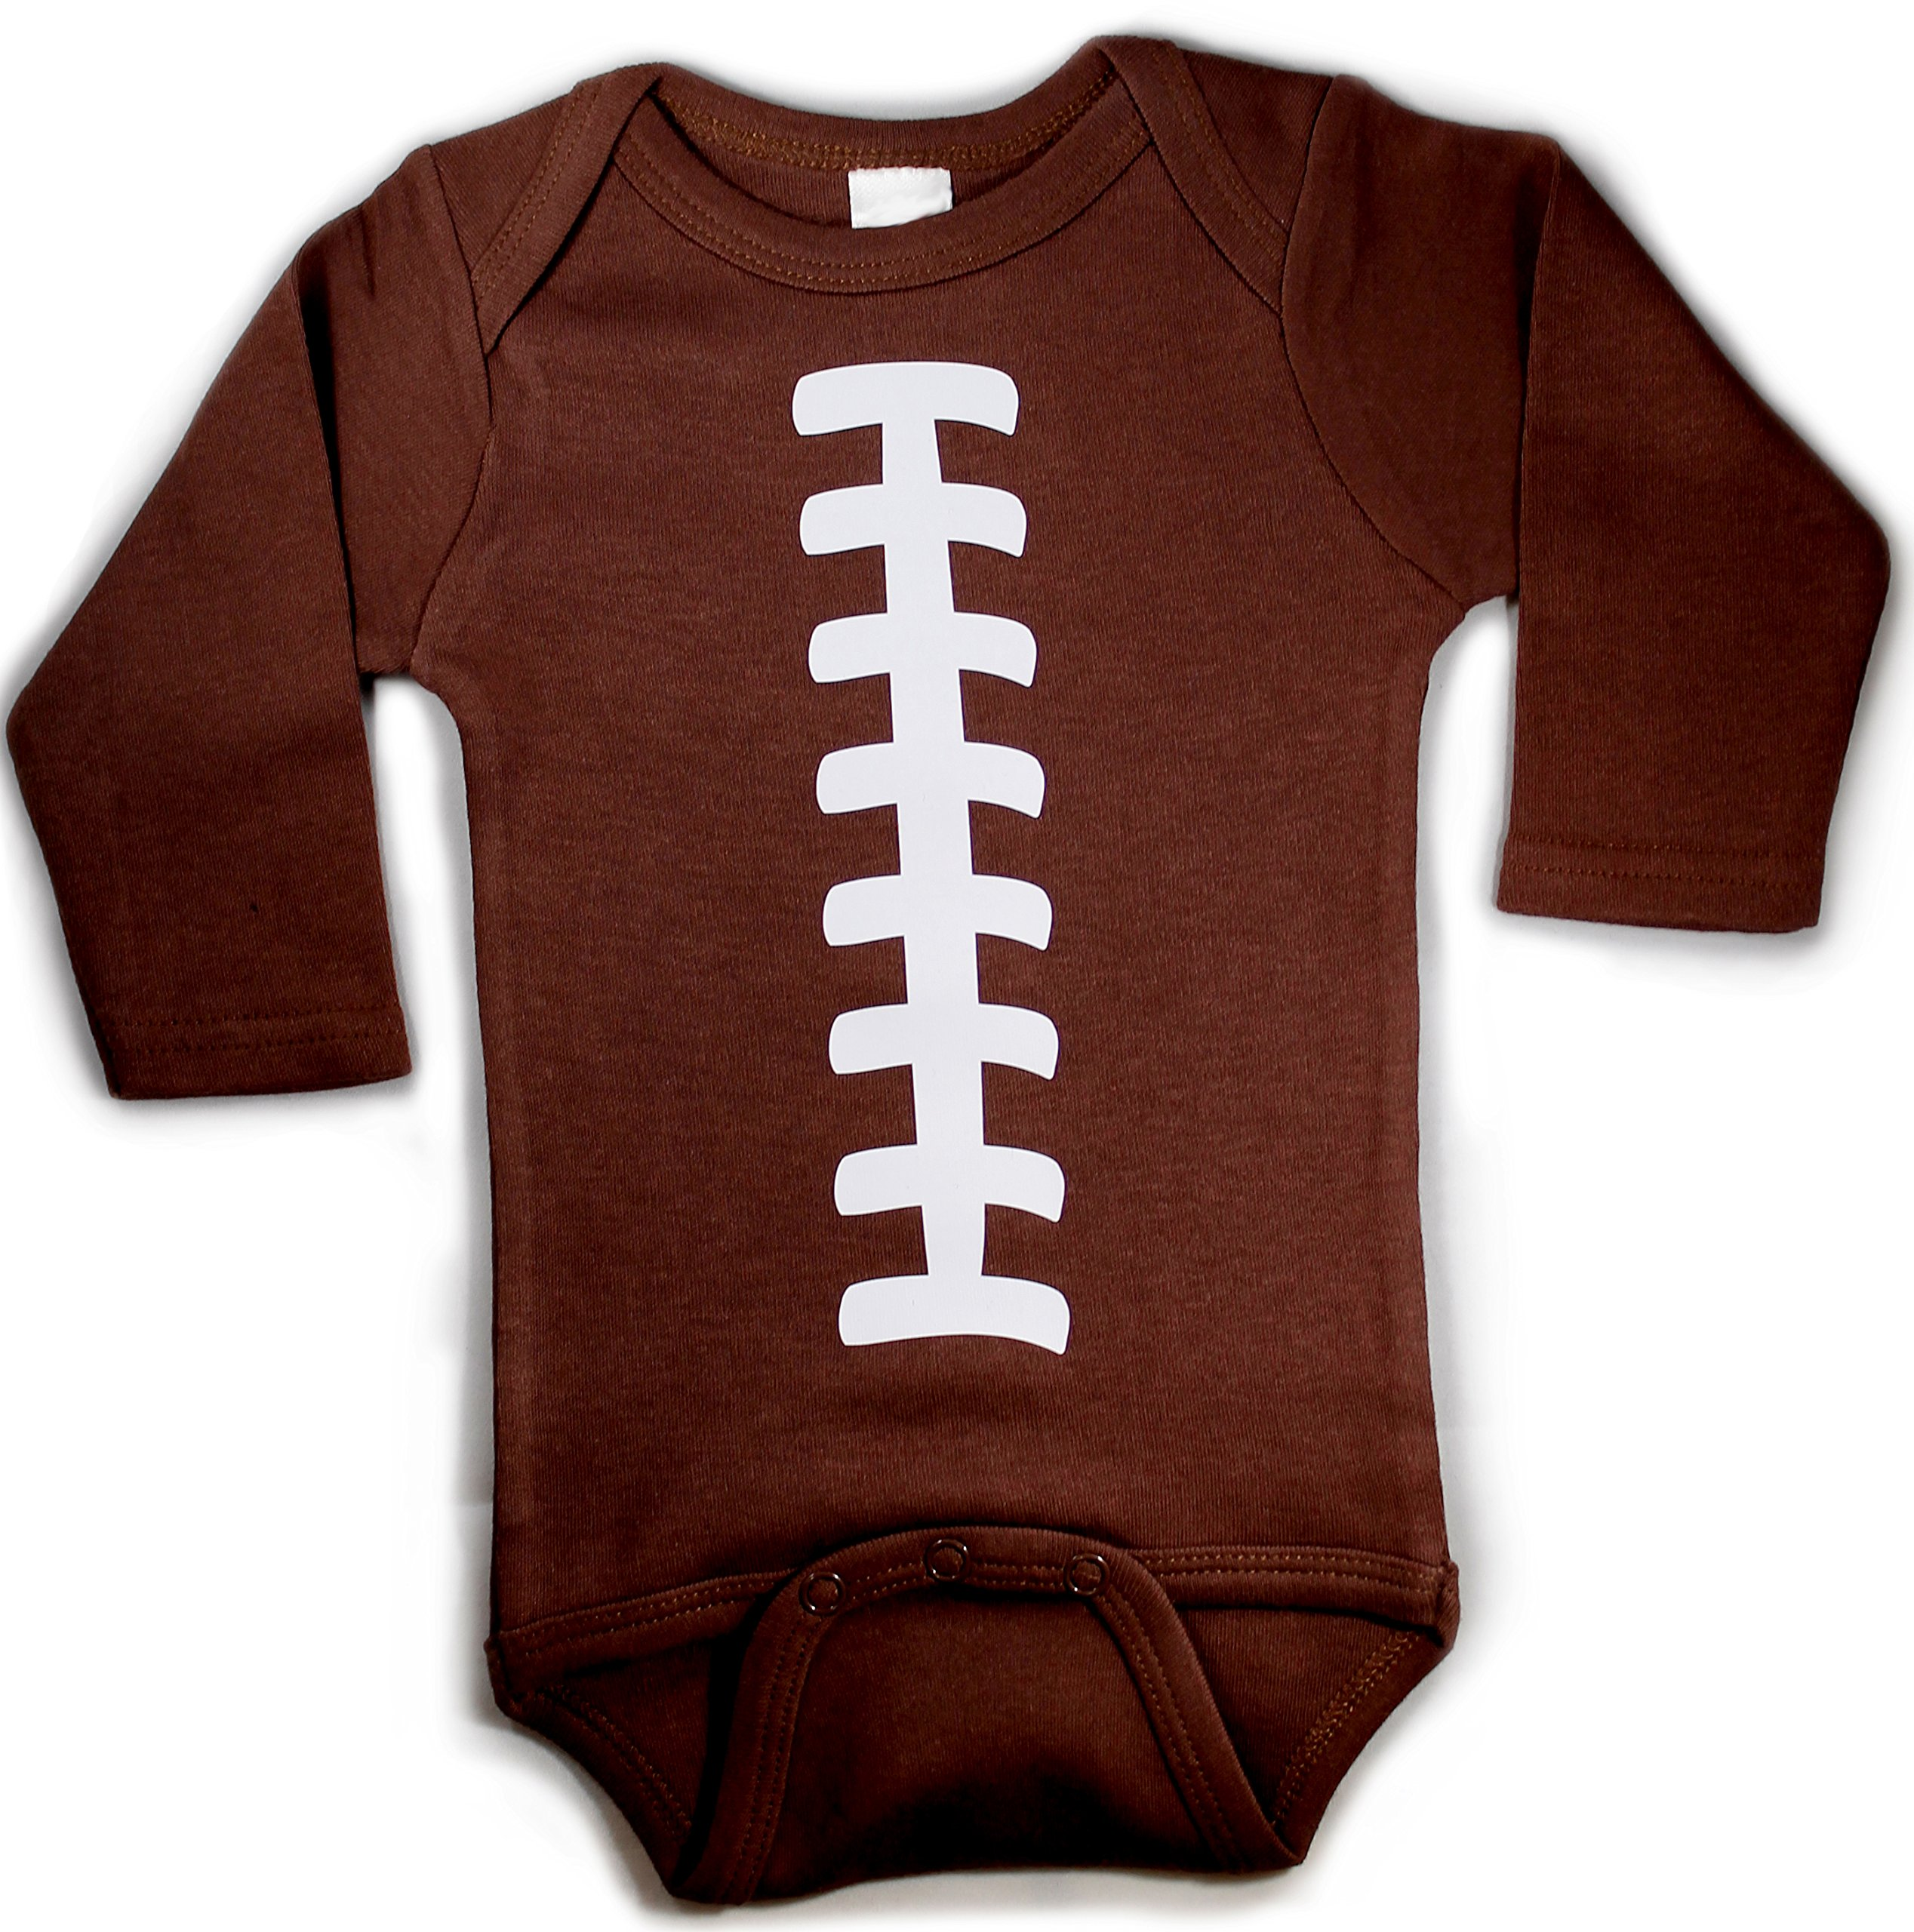 Baby Football Long Sleeve With Custom Personalized Back Baby Bodysuit Brown Unisex (3-6 Months (Small)) by Chamuco Customs (Image #2)